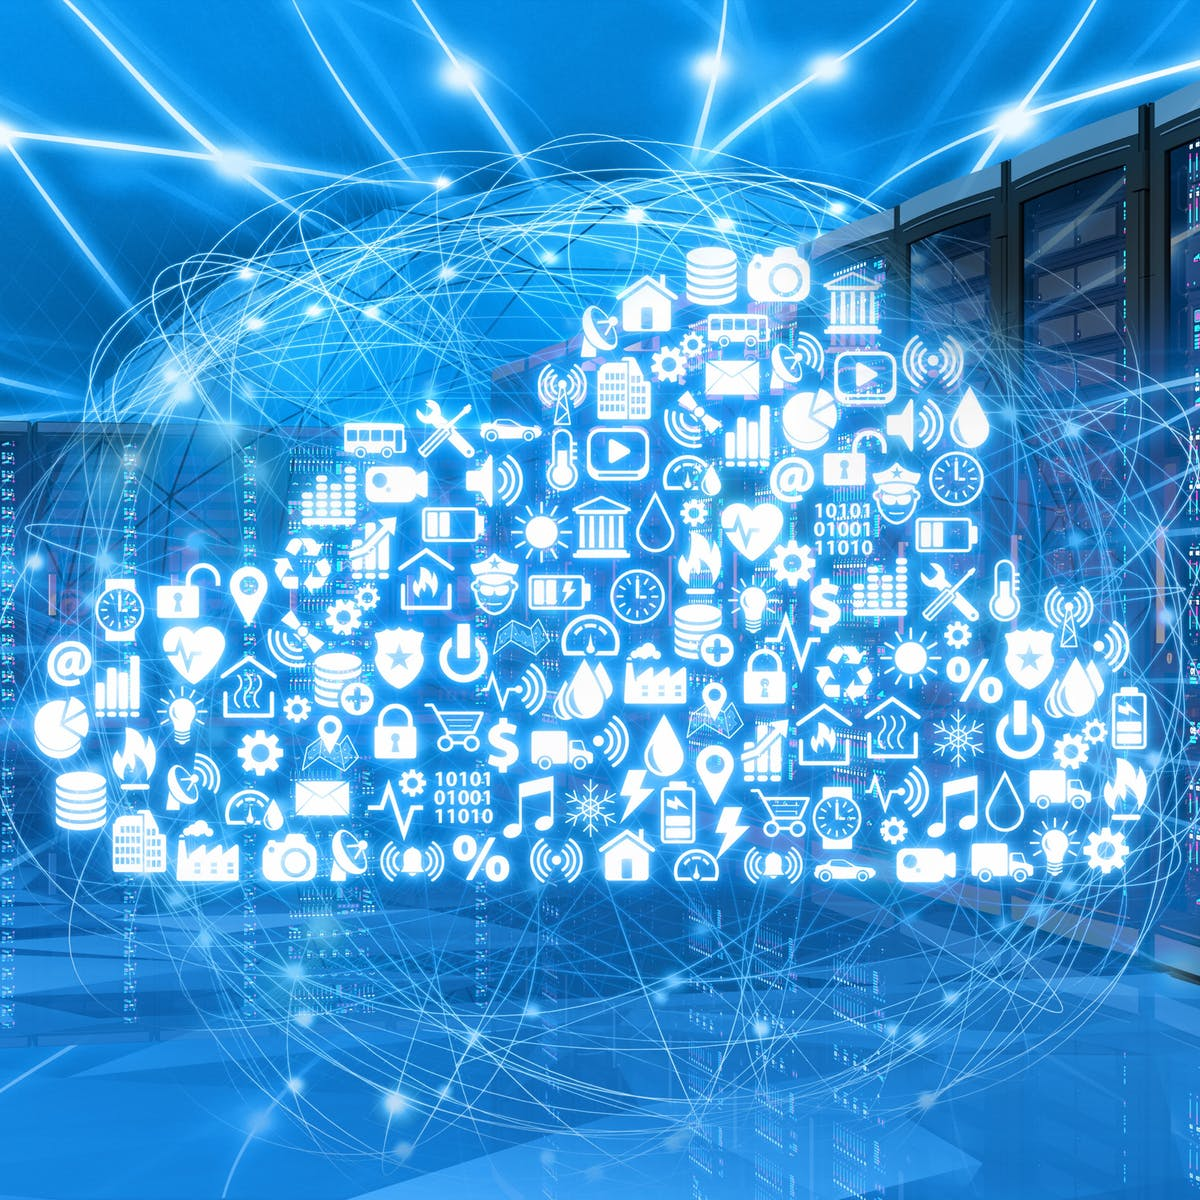 Titelbild-Cloud-Daten-Server-Rendering-Big-Data-iStock-539476054